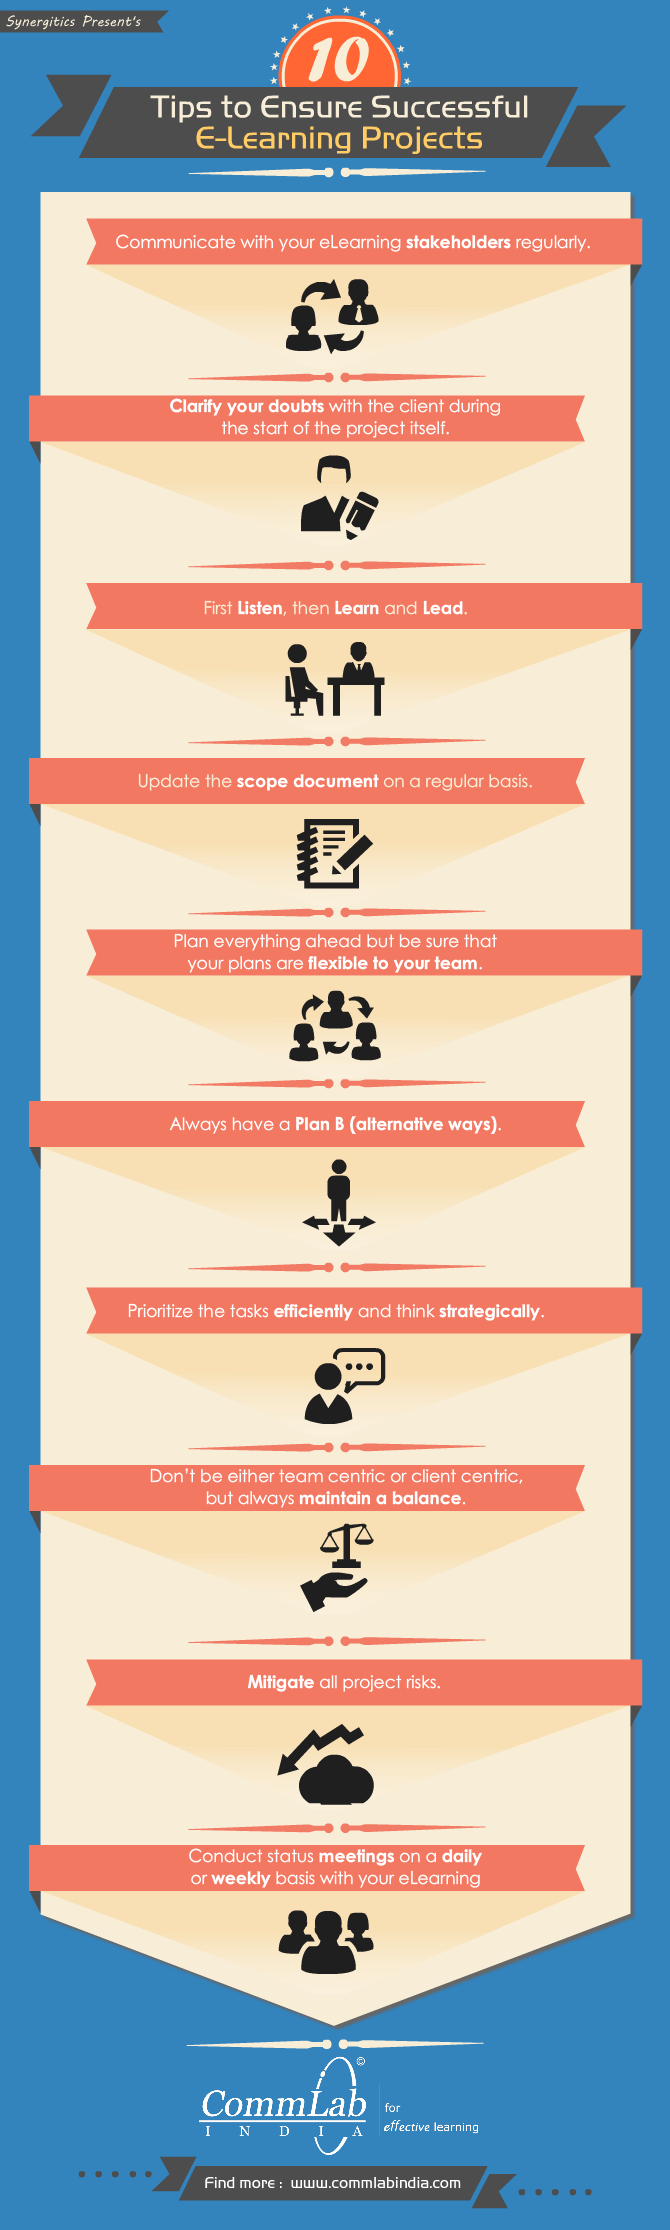 Managing Your E-learning Projects Effectively - 10 Proven Tips [infographic]